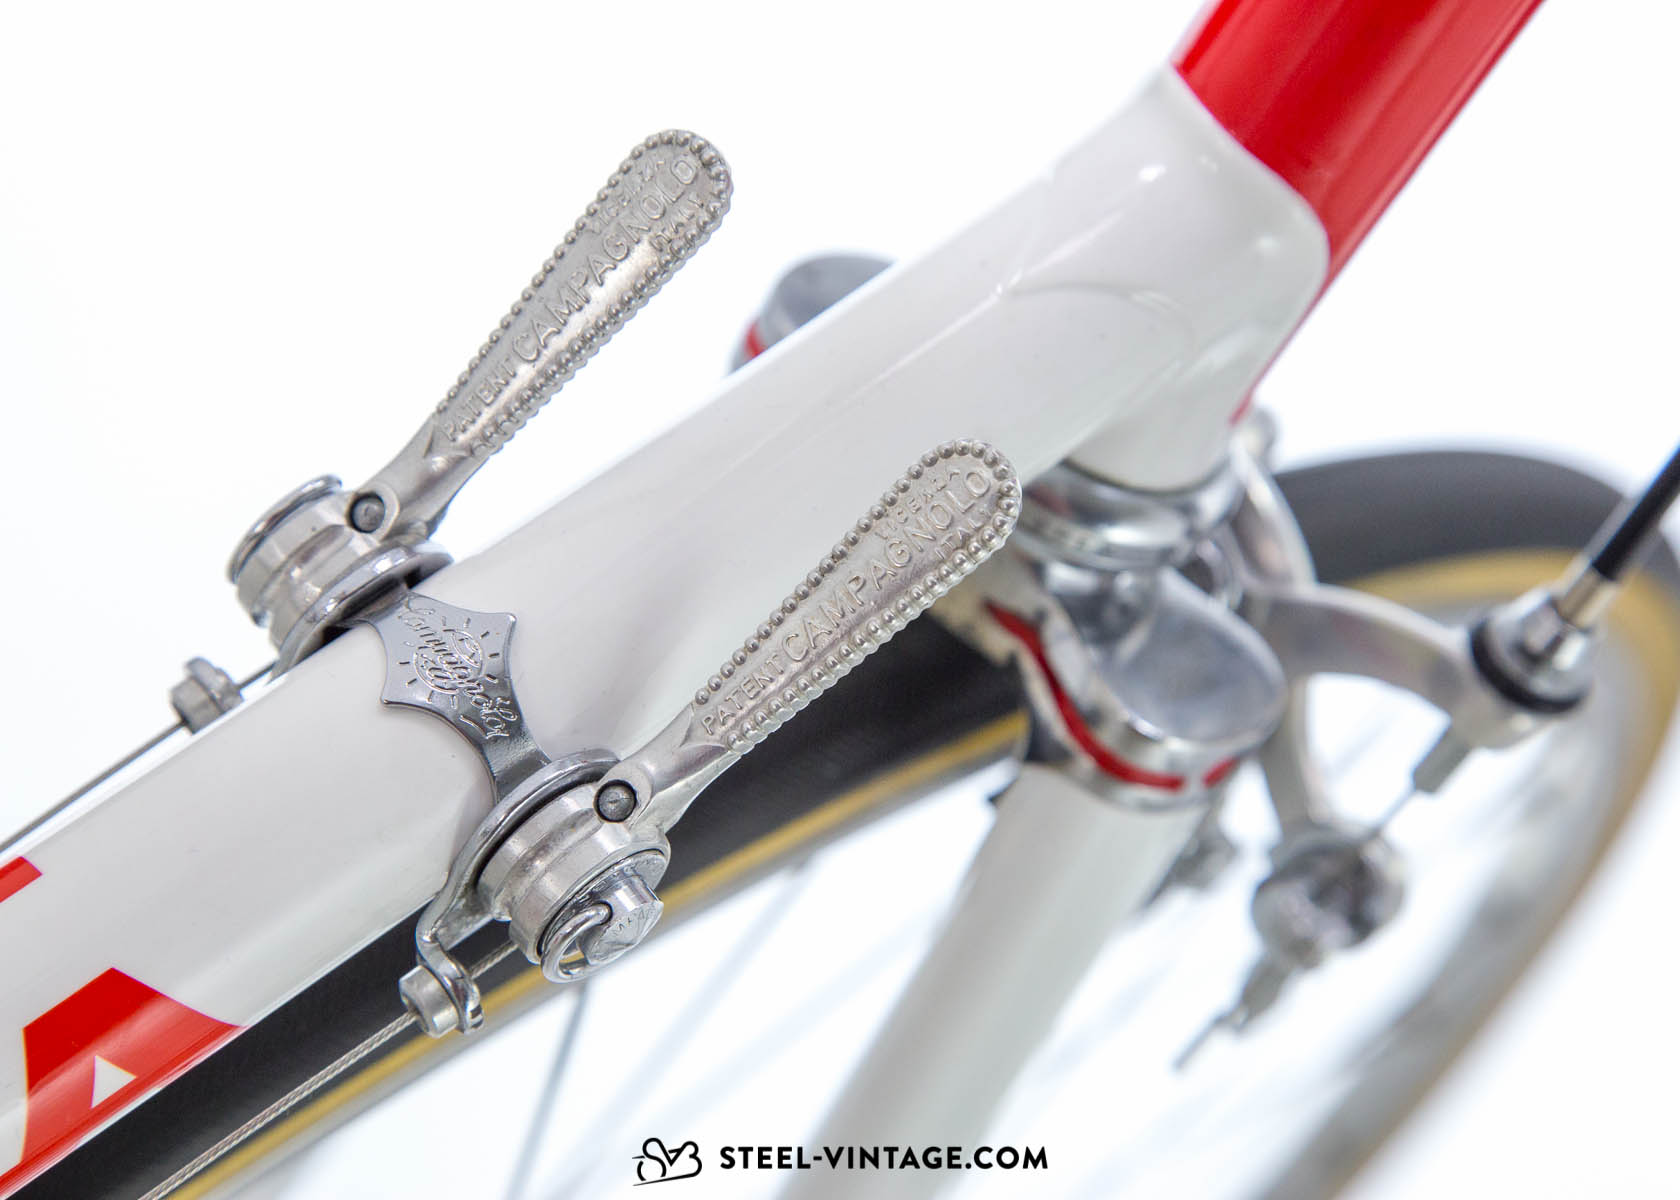 Eroica bicycle - Downtube Shifrter